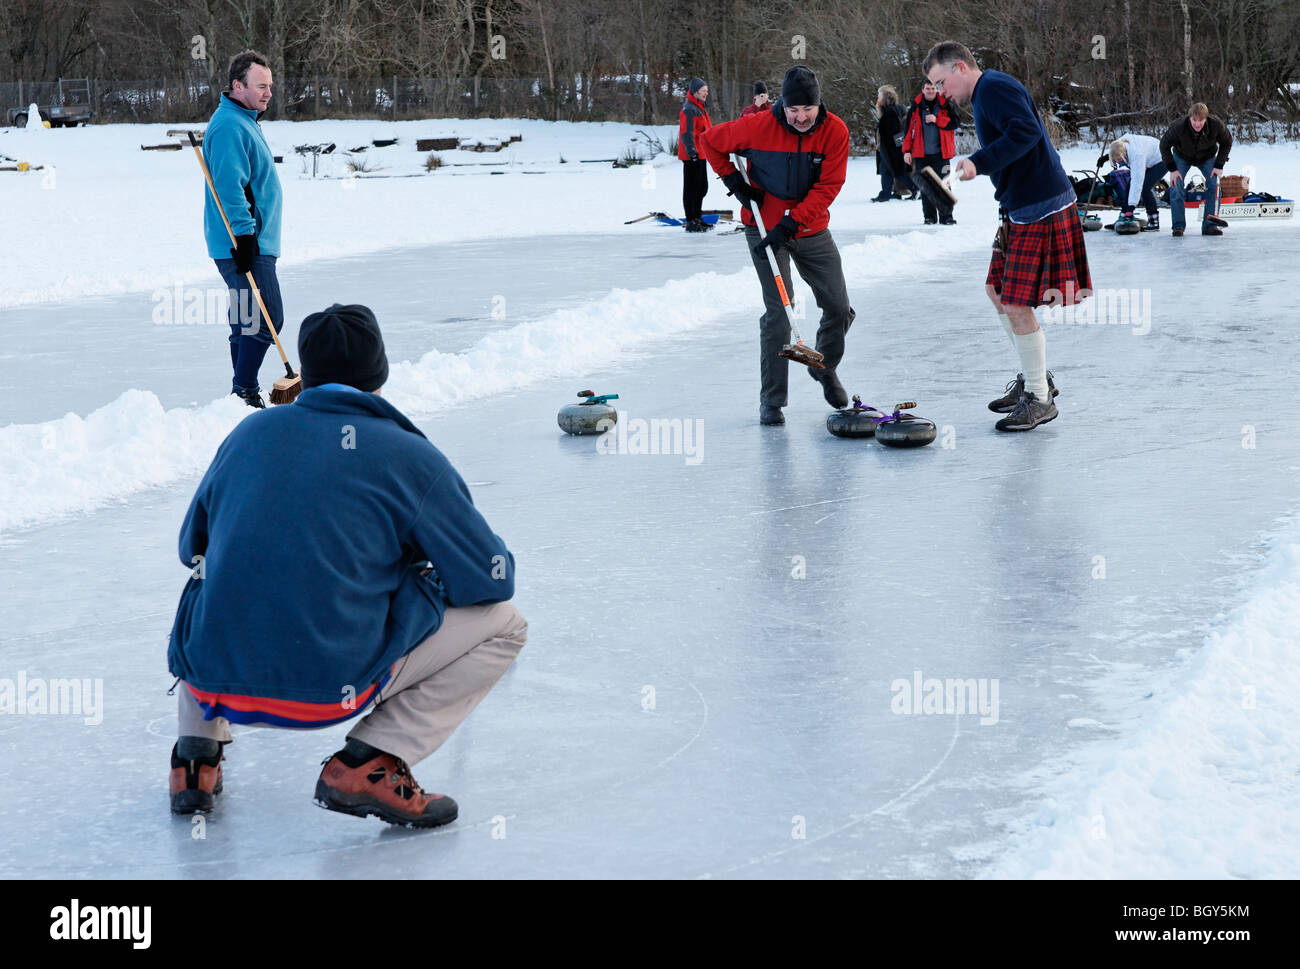 Curling match on the Lake of Menteith, Stirling, Scotland, UK - Stock Image